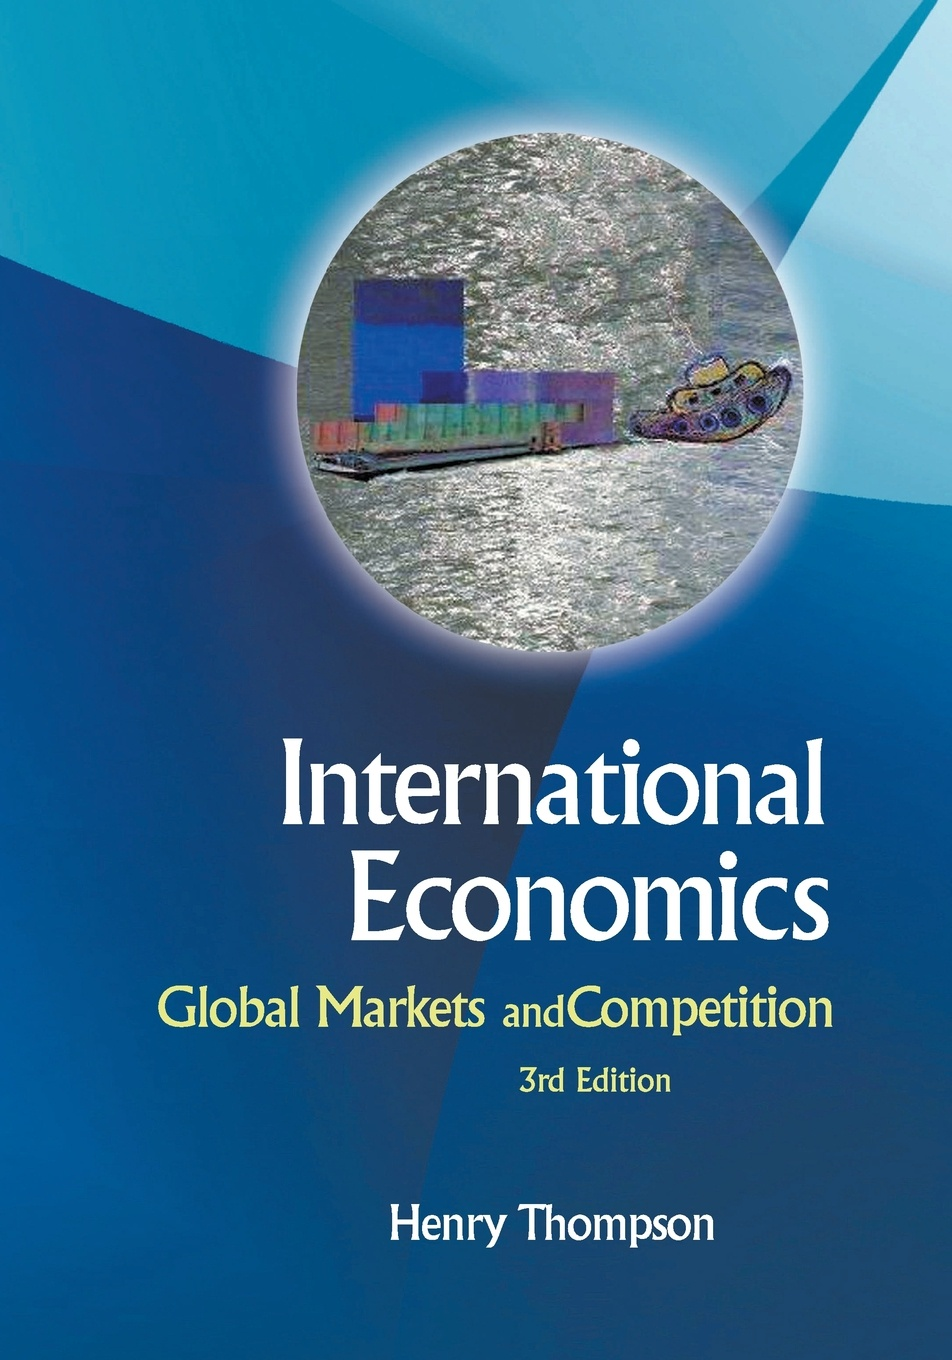 Henry Thompson International Economics. Global Markets and Competition - 3rd Edition international trade and agriculture